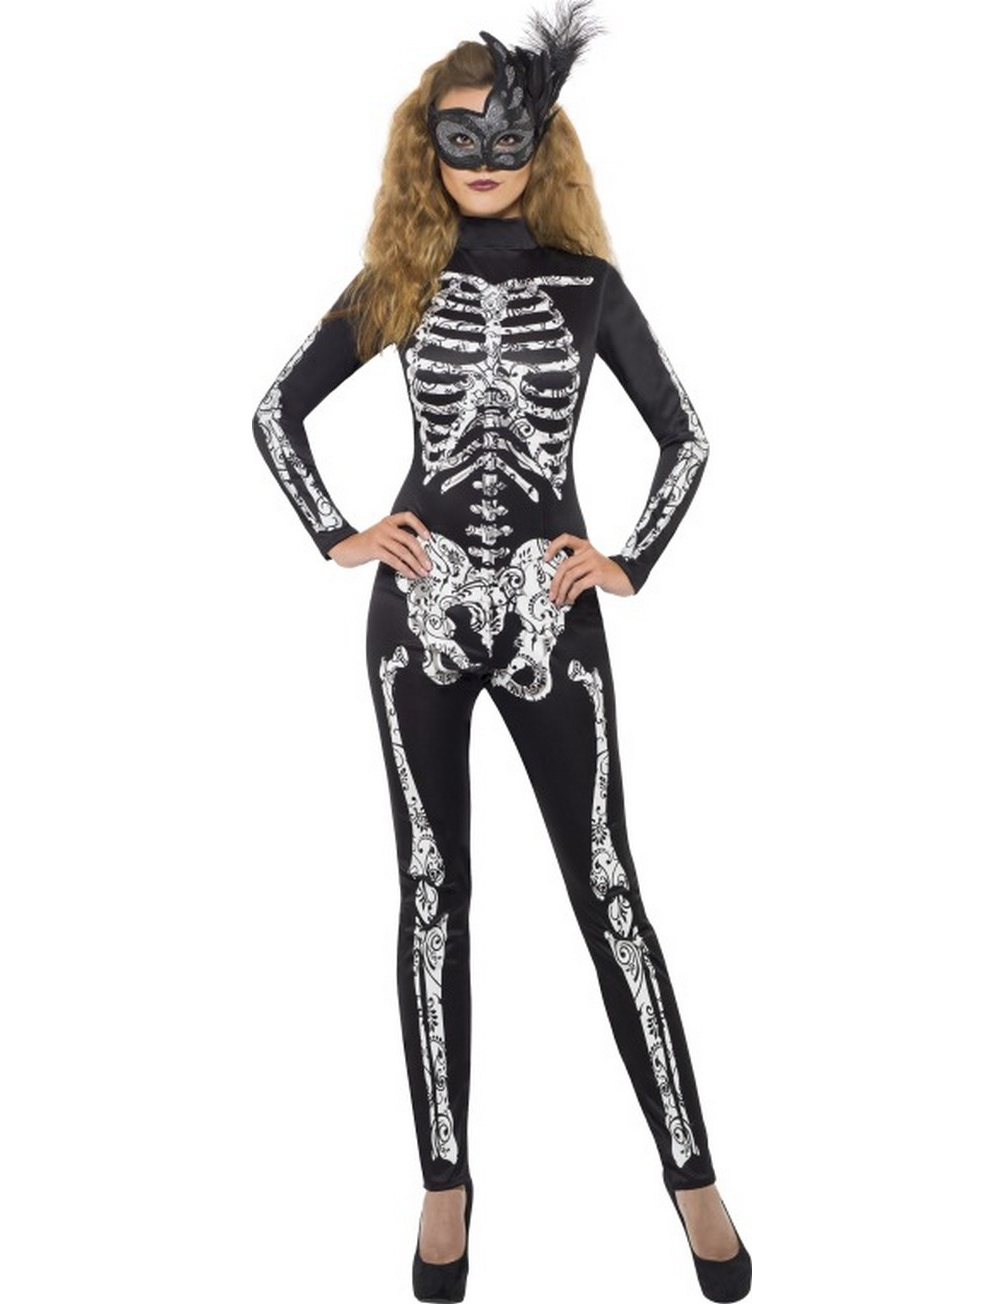 Fancy Dress Skeleton Costumes Halloween Costumes Skeletons Of The Day Halloween Ideas